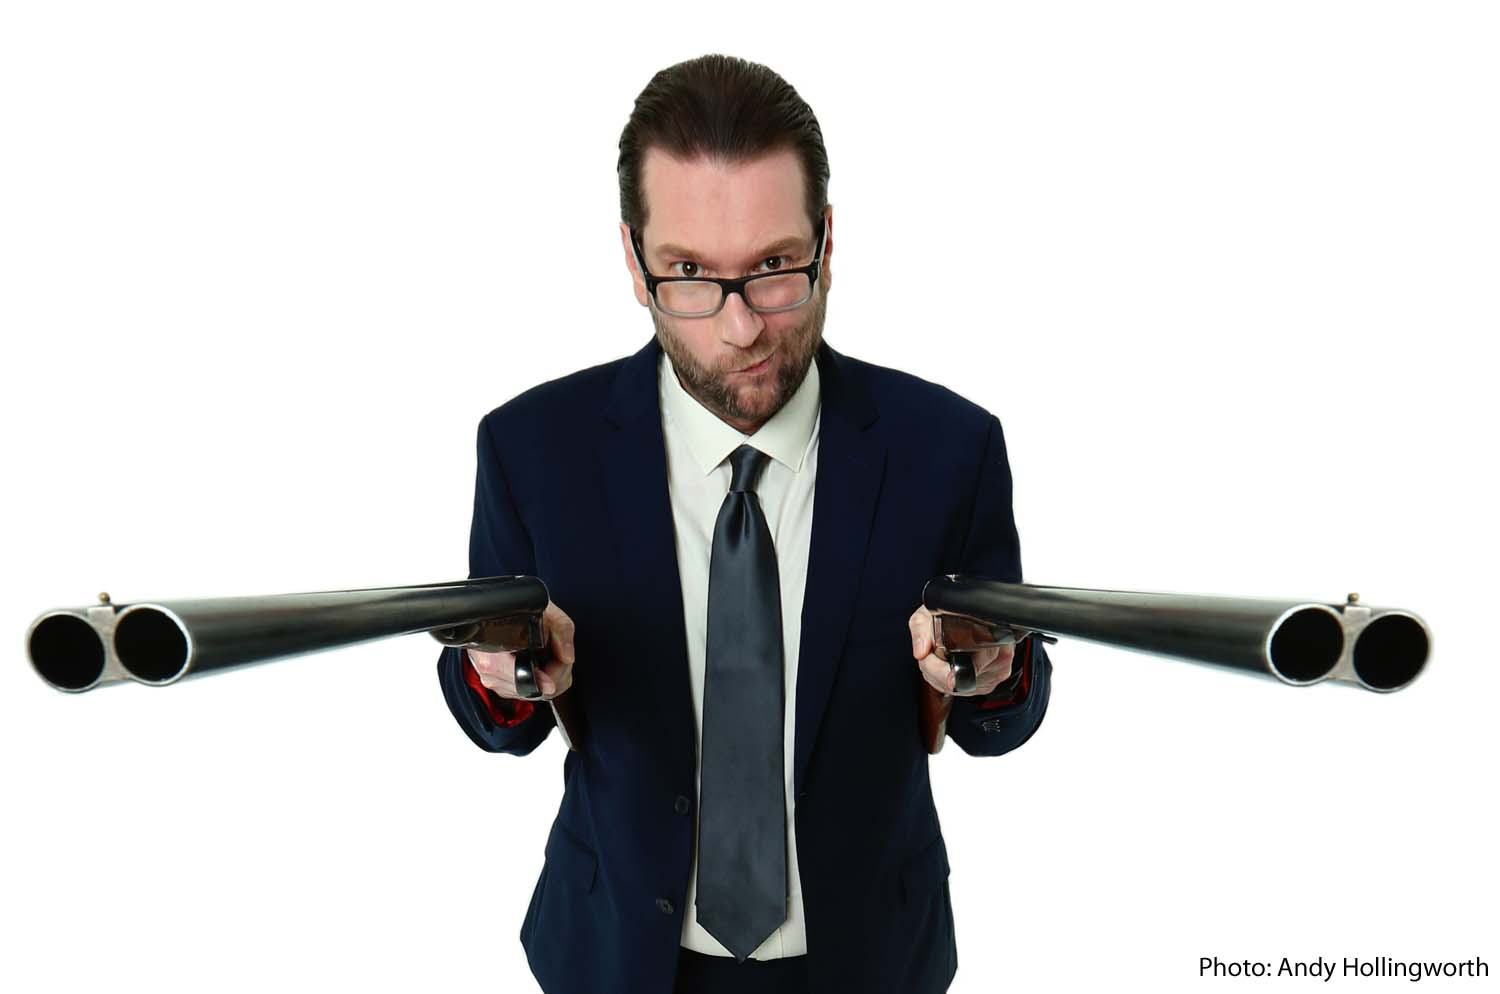 Gary Delaney plays Pontardawe Arts Centre on November 24, 2018 and Merthyr Tydfil's Redhouse on January 25, 2019. Photographs by Andy Hollingworth.